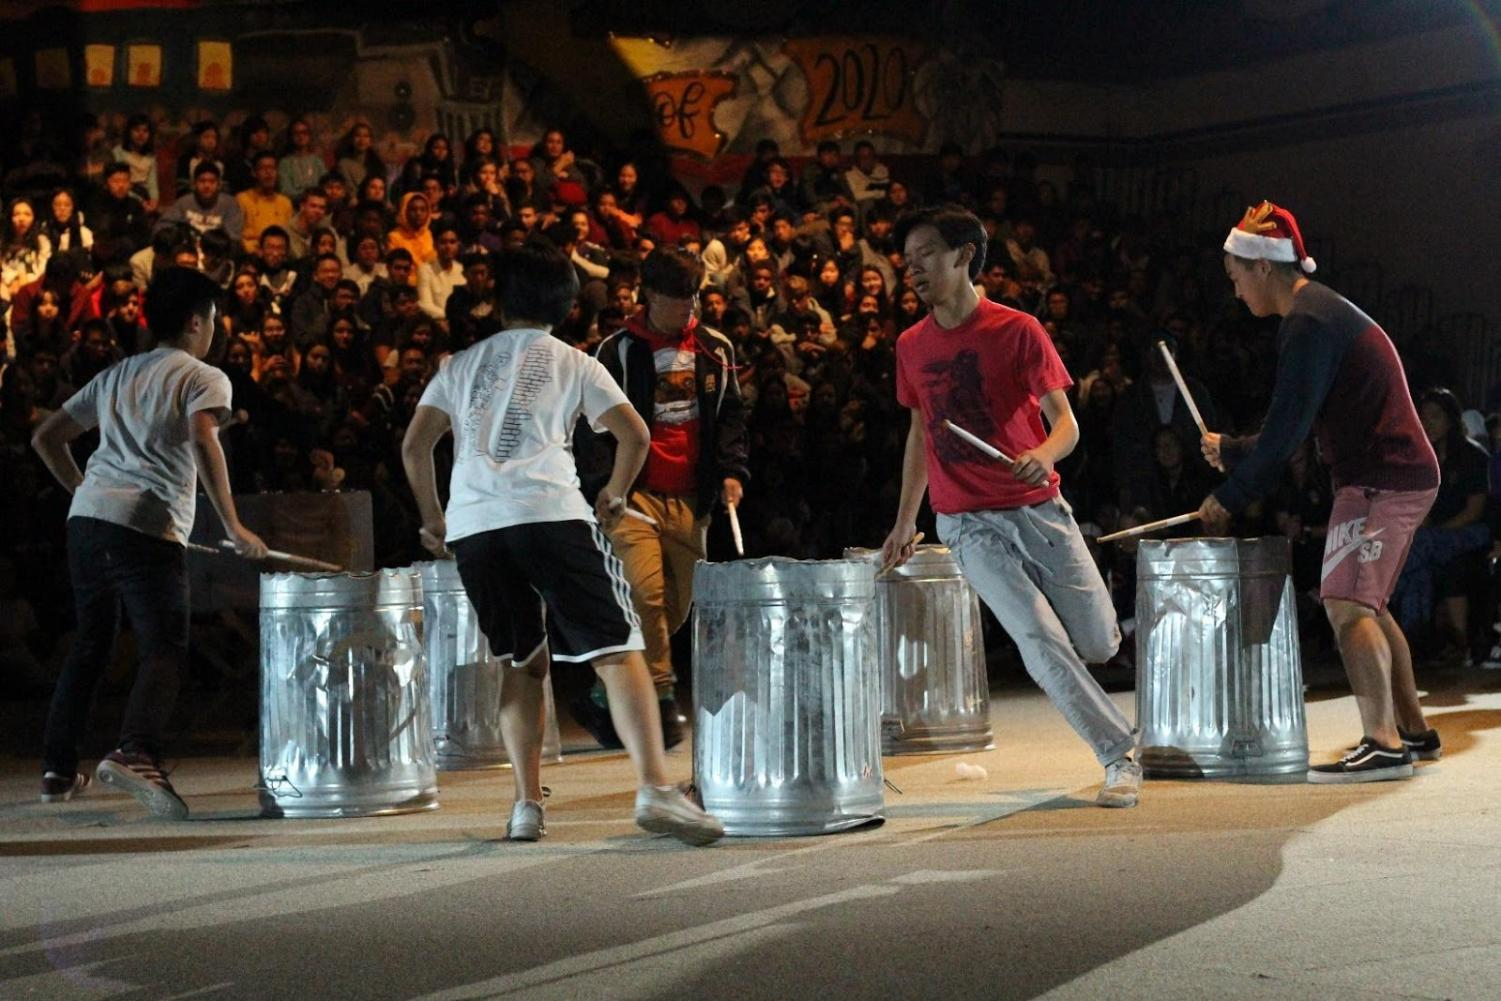 Shown left to right are senior World Line members Edison Chow, Evelyn Lee, Jack May, Isaac Kau and Hyunwoo Kim performing their percussion routine using aluminum trash cans at the winter sports rally on Dec. 8 in the gym.